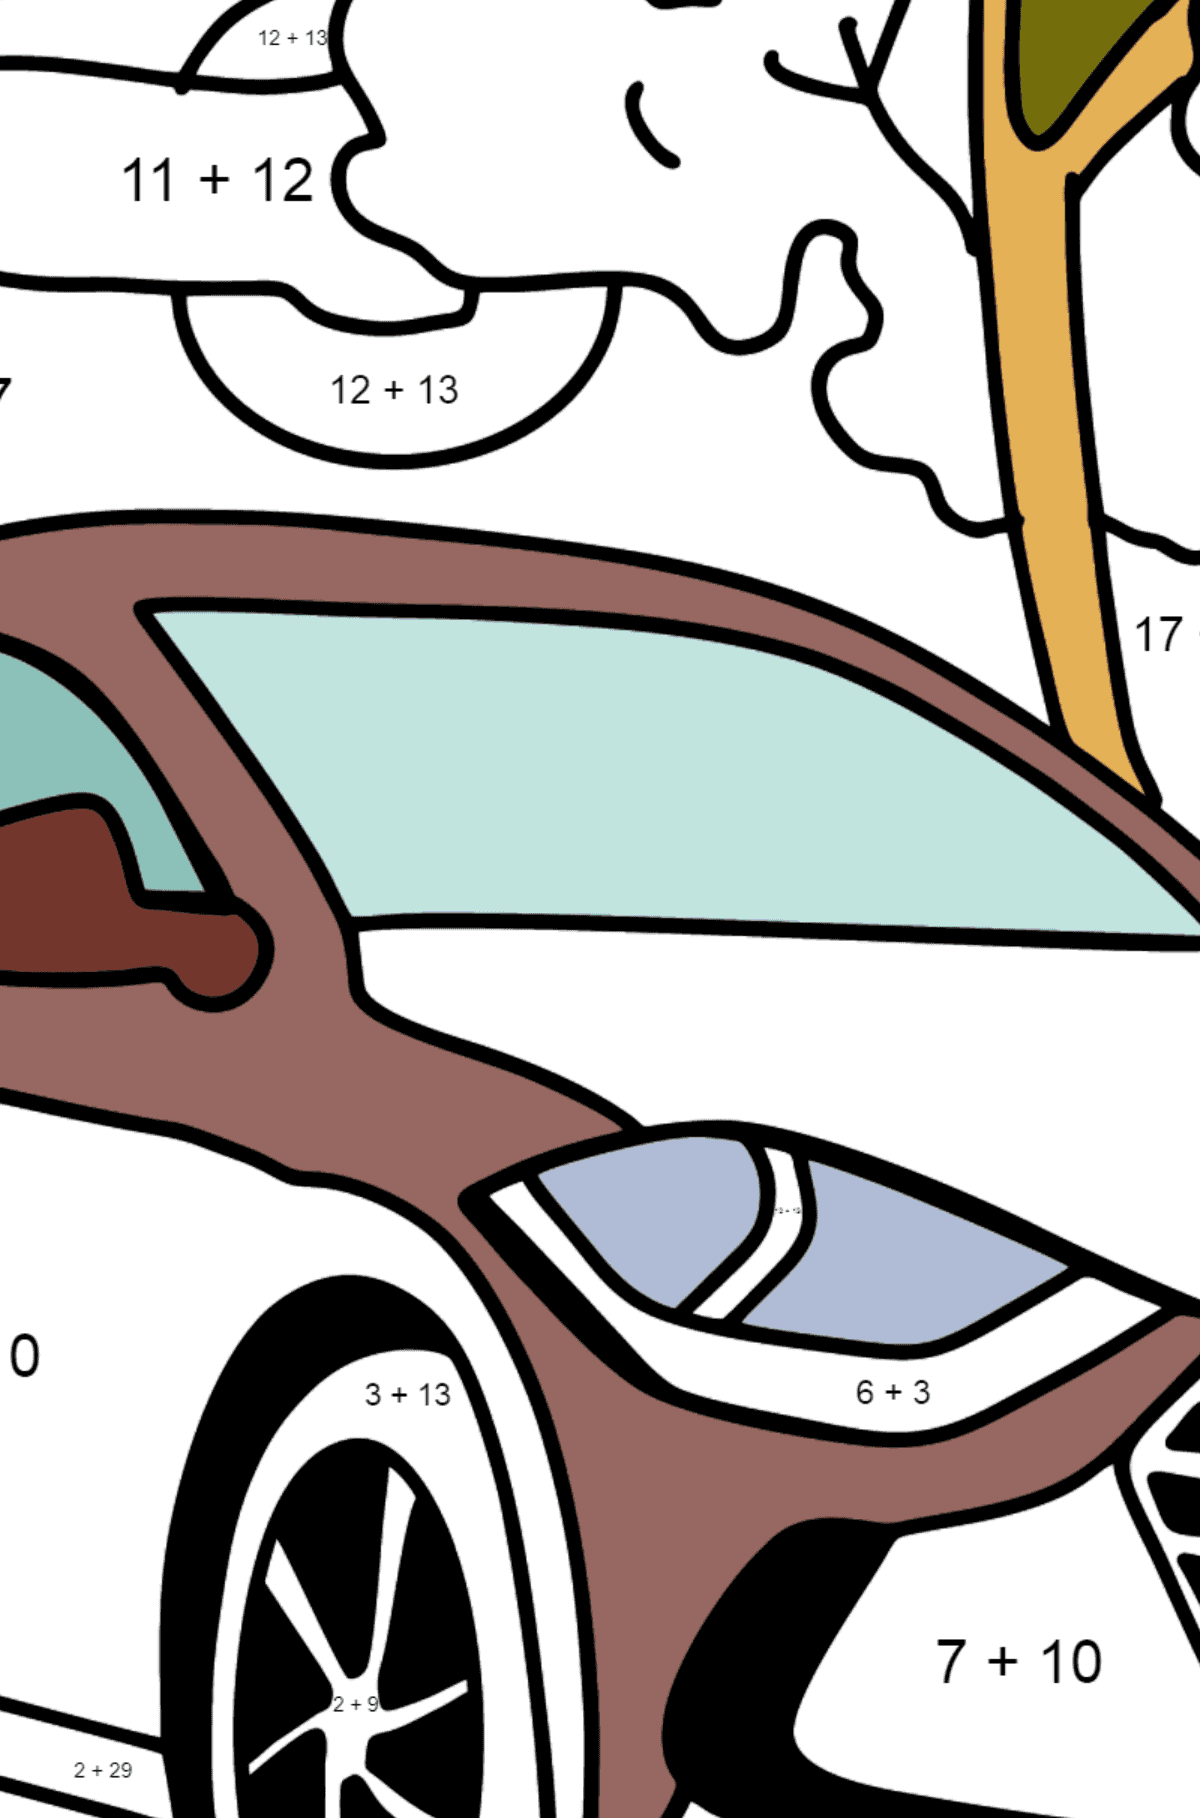 Hyundai car coloring page - Math Coloring - Addition for Kids